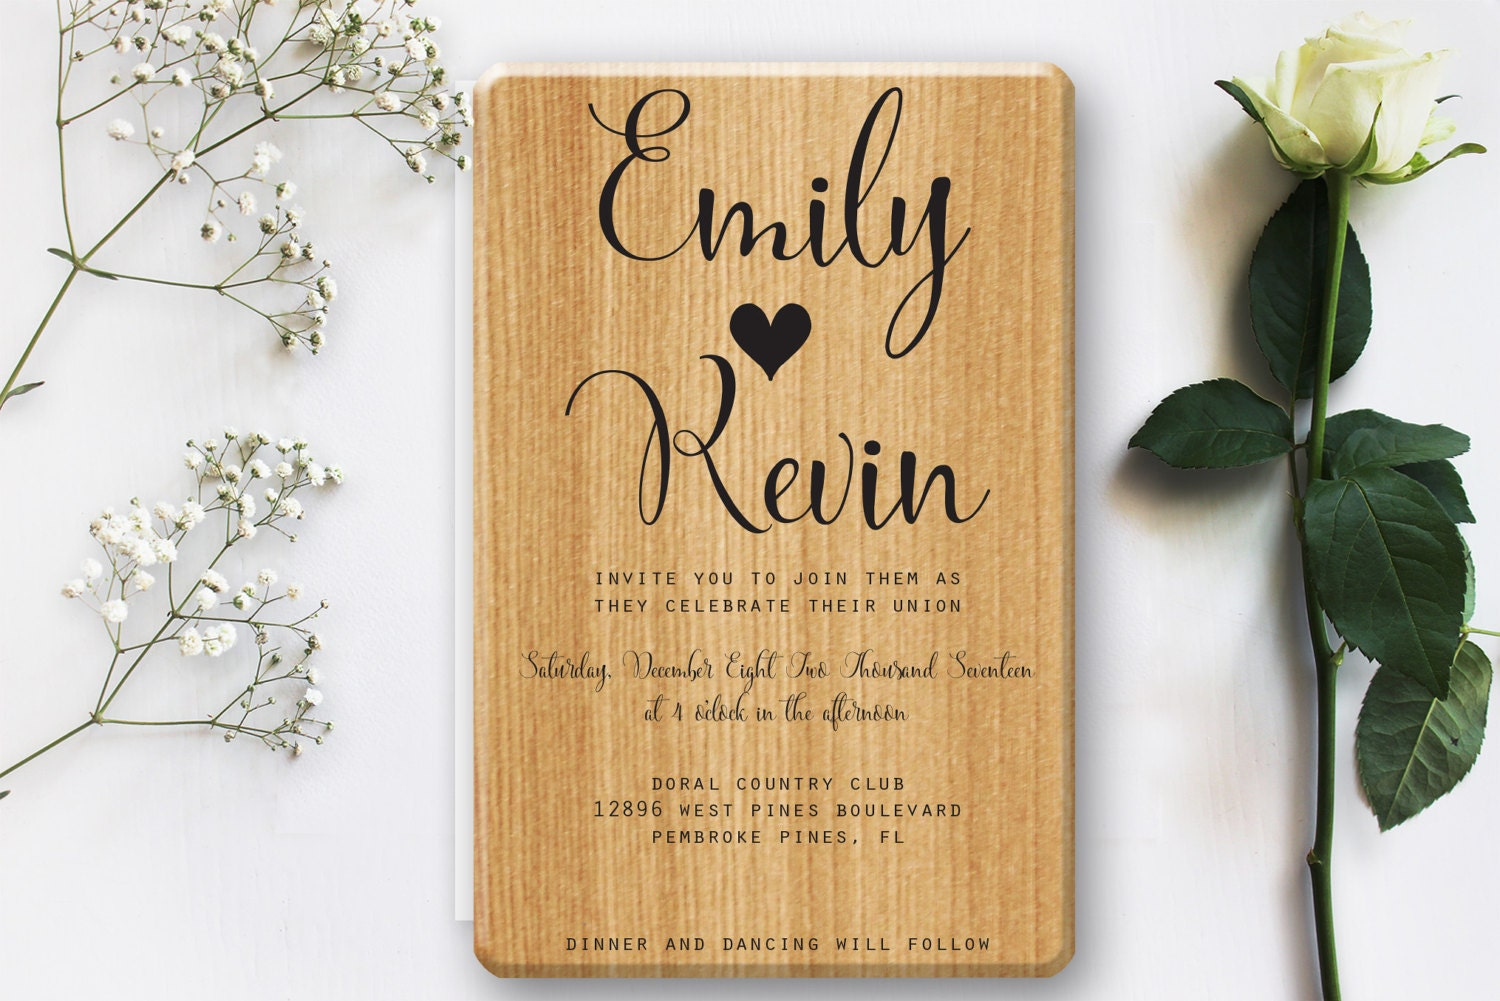 Wedding Invite Stamp: Wedding Stamp Wedding Invitation Stamp Custom Wedding Invite